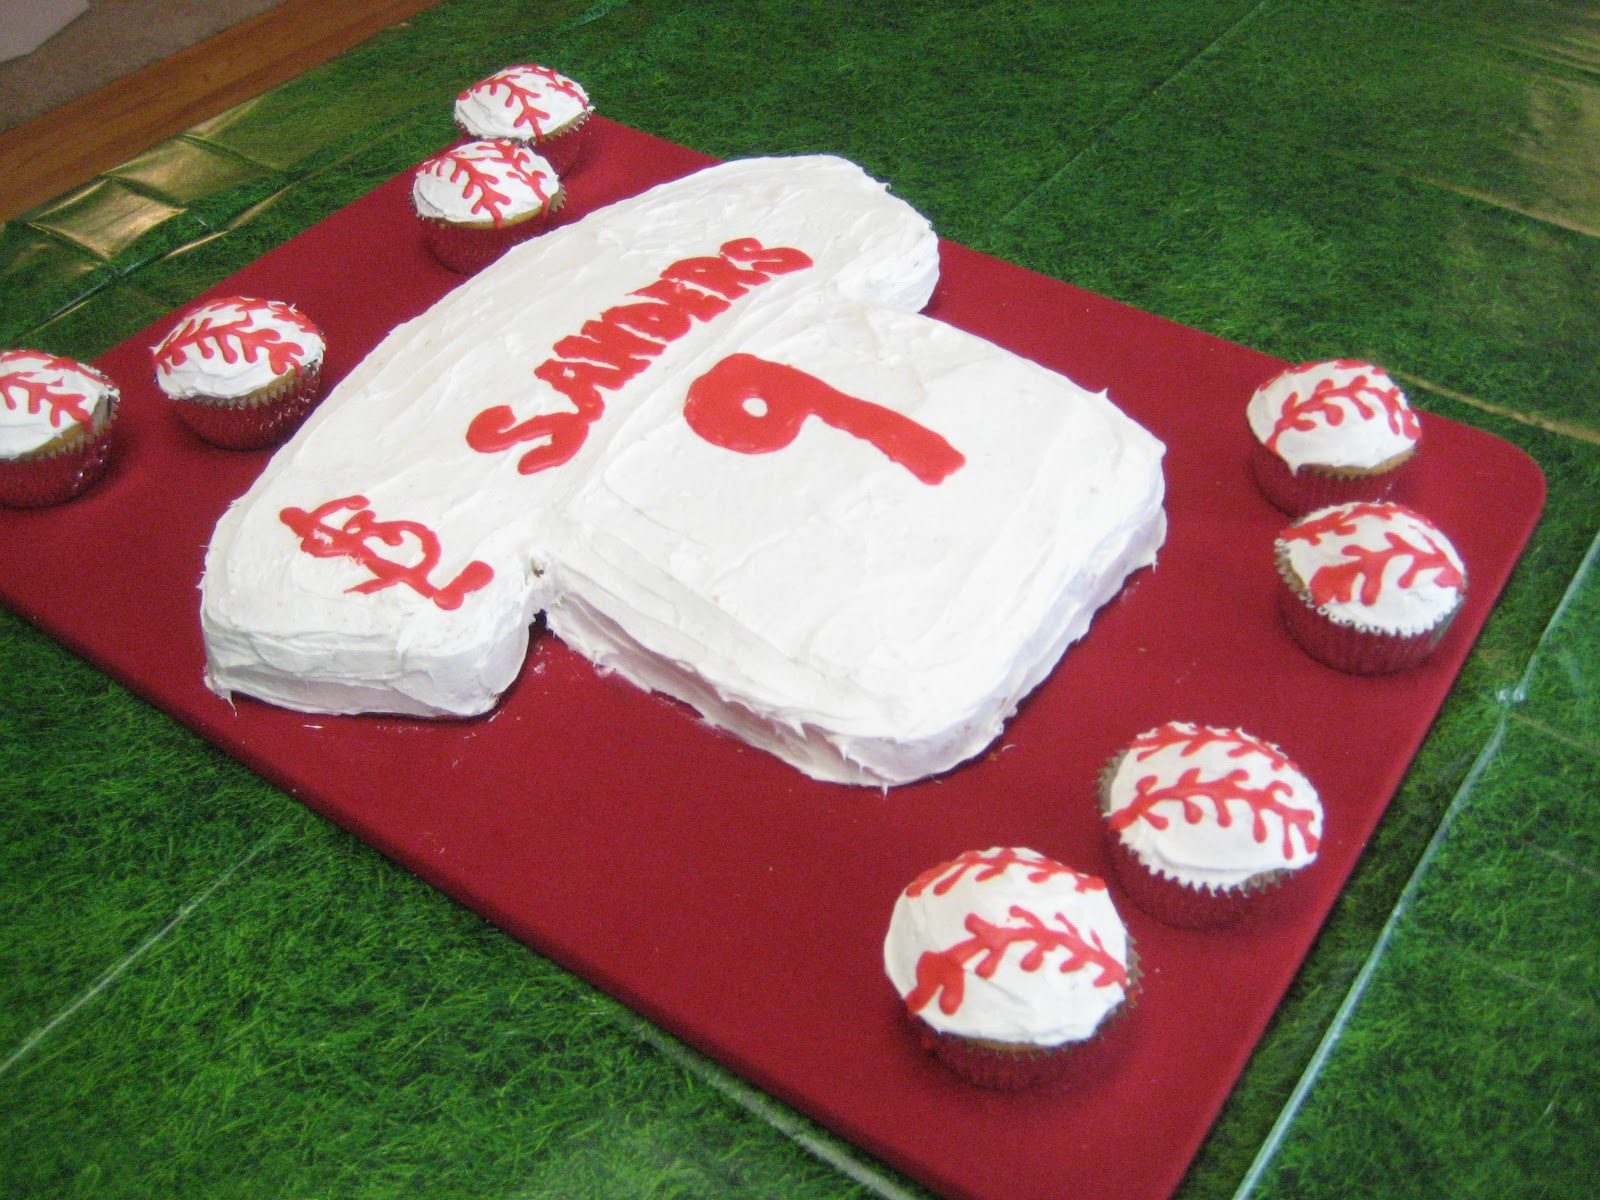 FamilyFoodCreativity Lets Play Ball St Louis Cardinals Baseball Themed Birthday Party